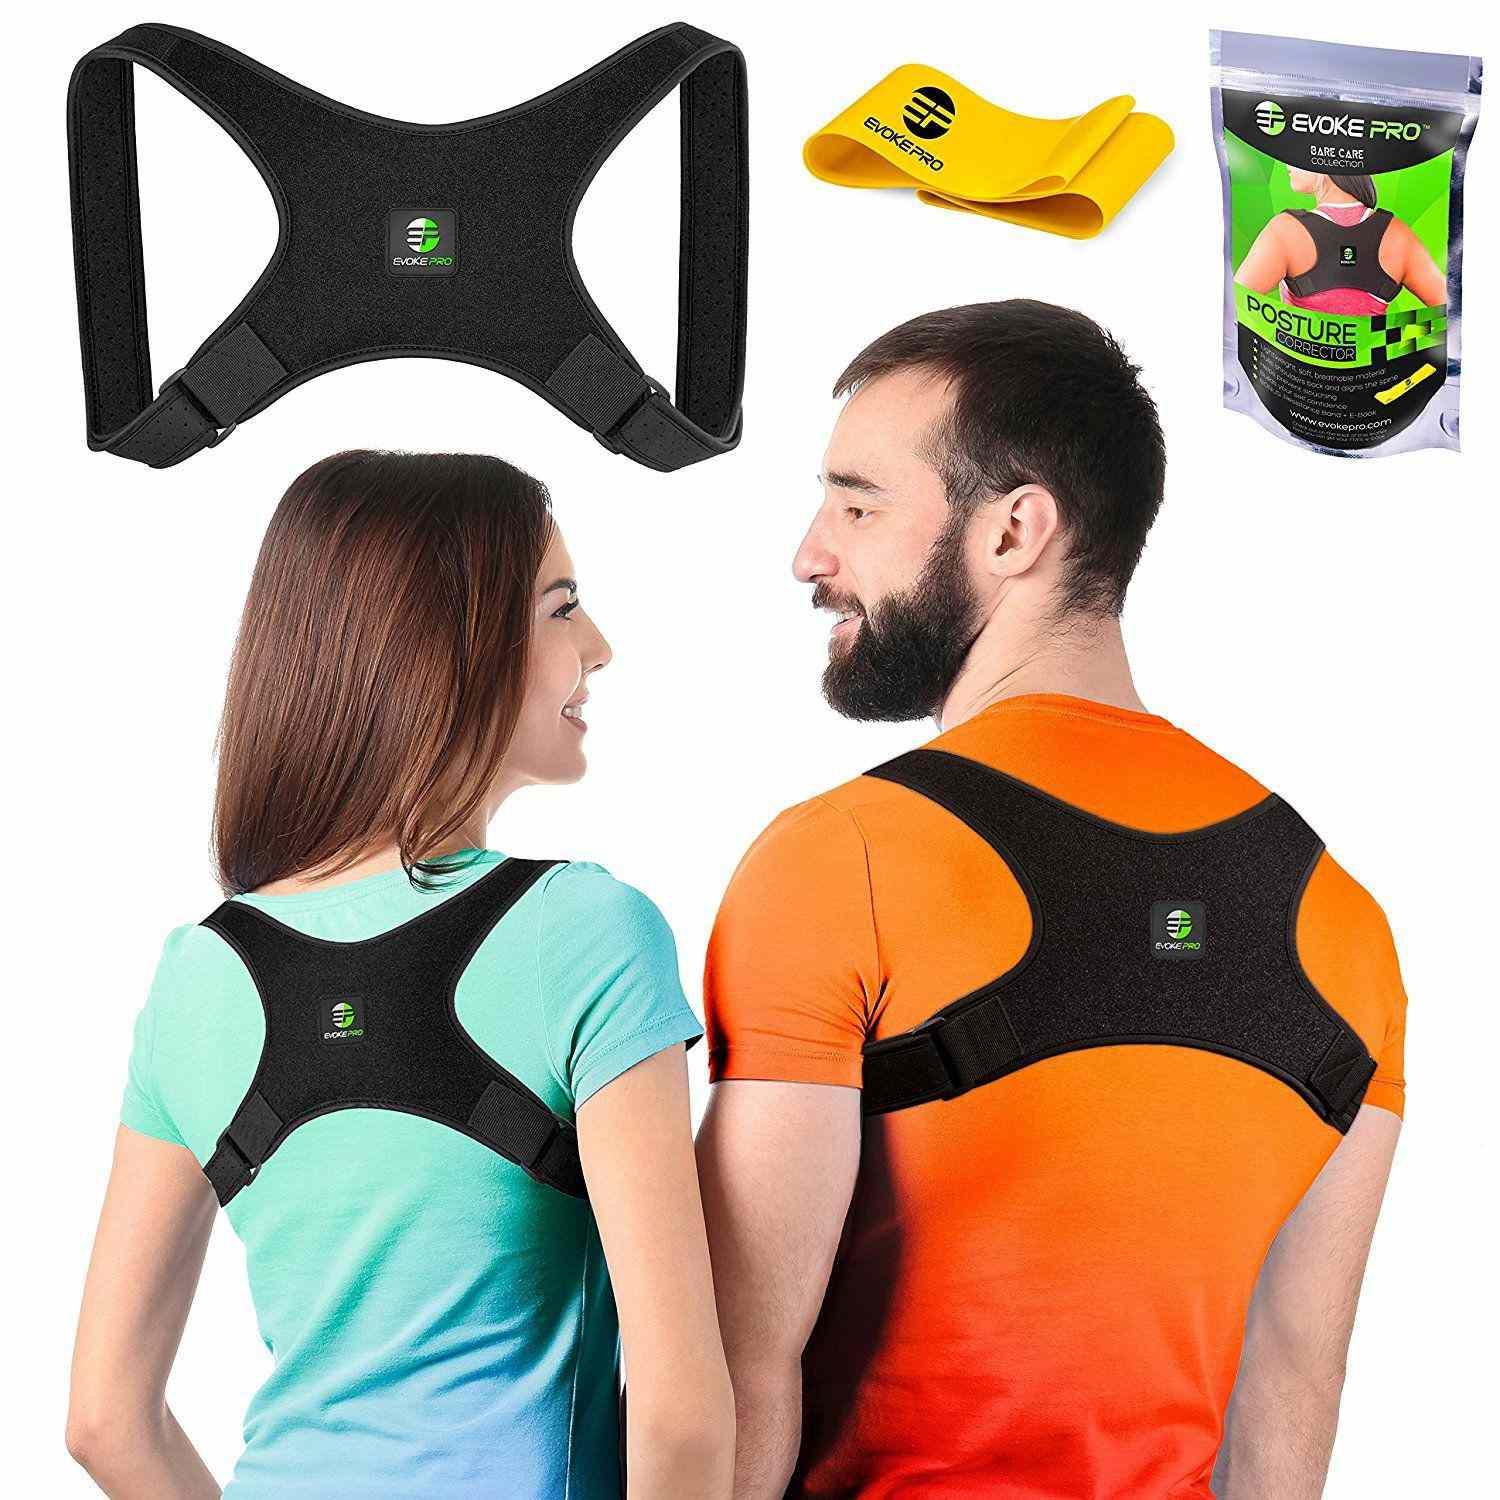 The 8 Best Posture Correctors of 2020